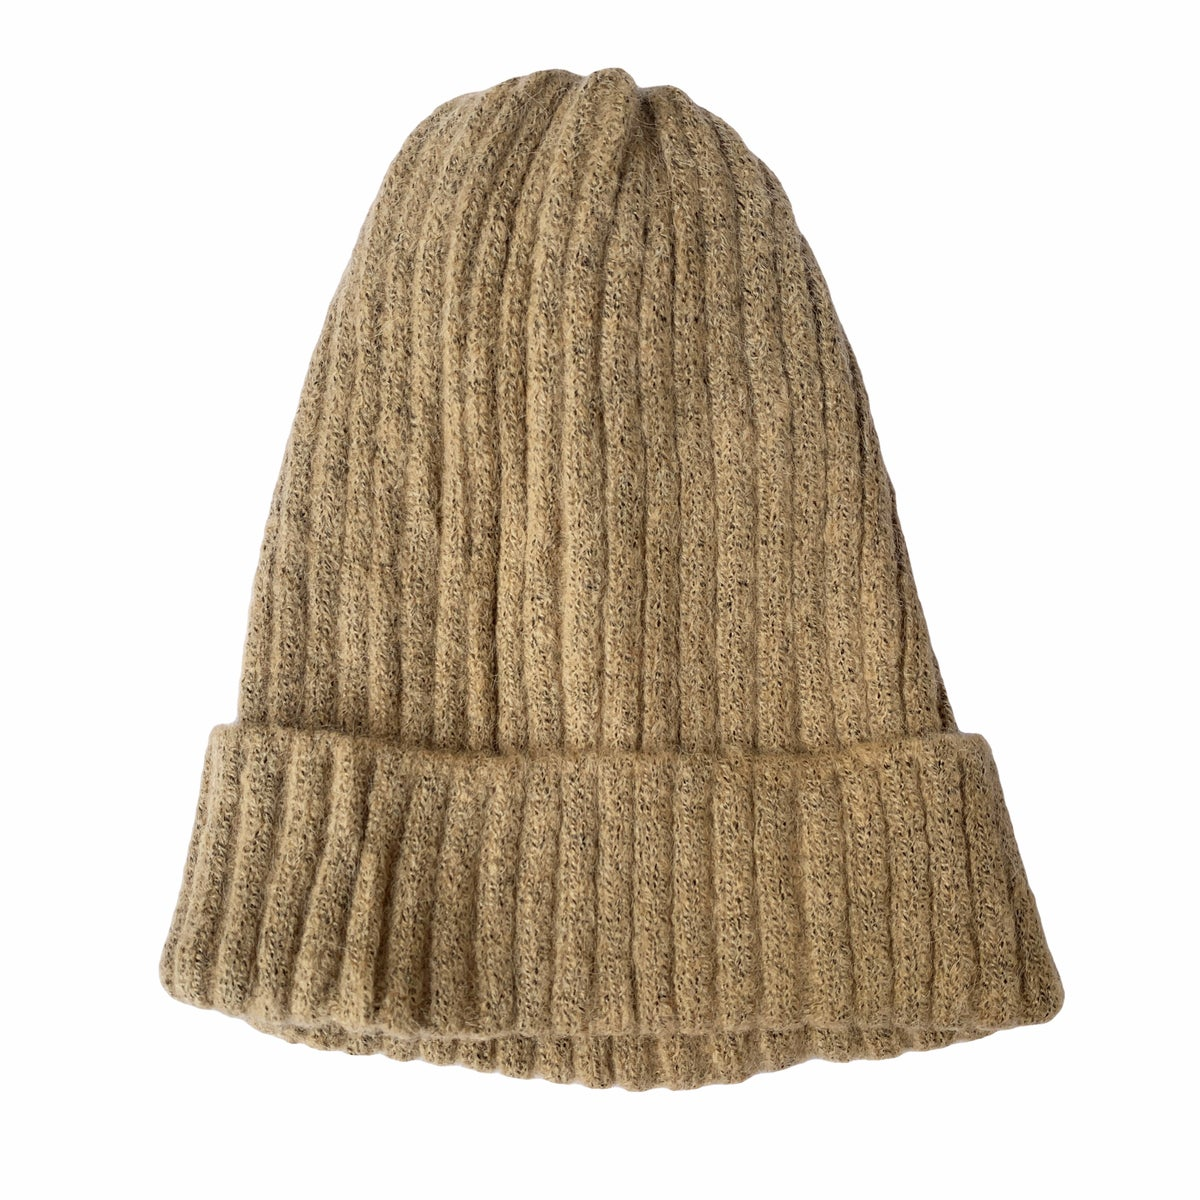 Image of Soft Fisherman's Beanie/ Watch Cap. Sand